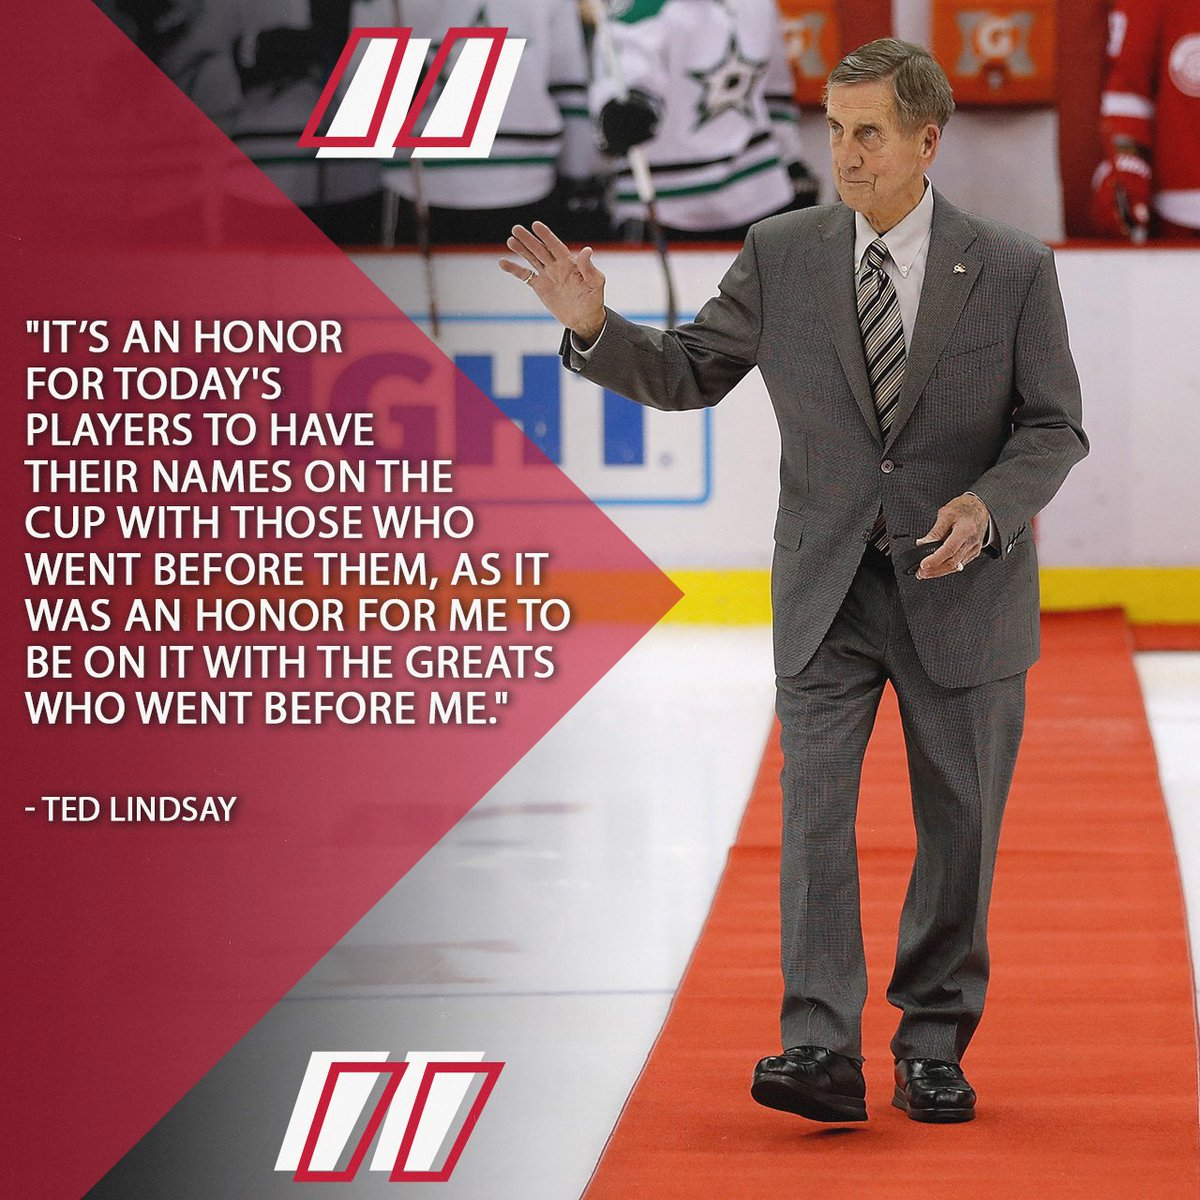 Hockey Hall of Fame legends, including @DetroitRedWings great Ted Lindsay, embrace making room for future champions on the #StanleyCup (via @Dave_Stubbs). atnhl.com/2PVqj8T